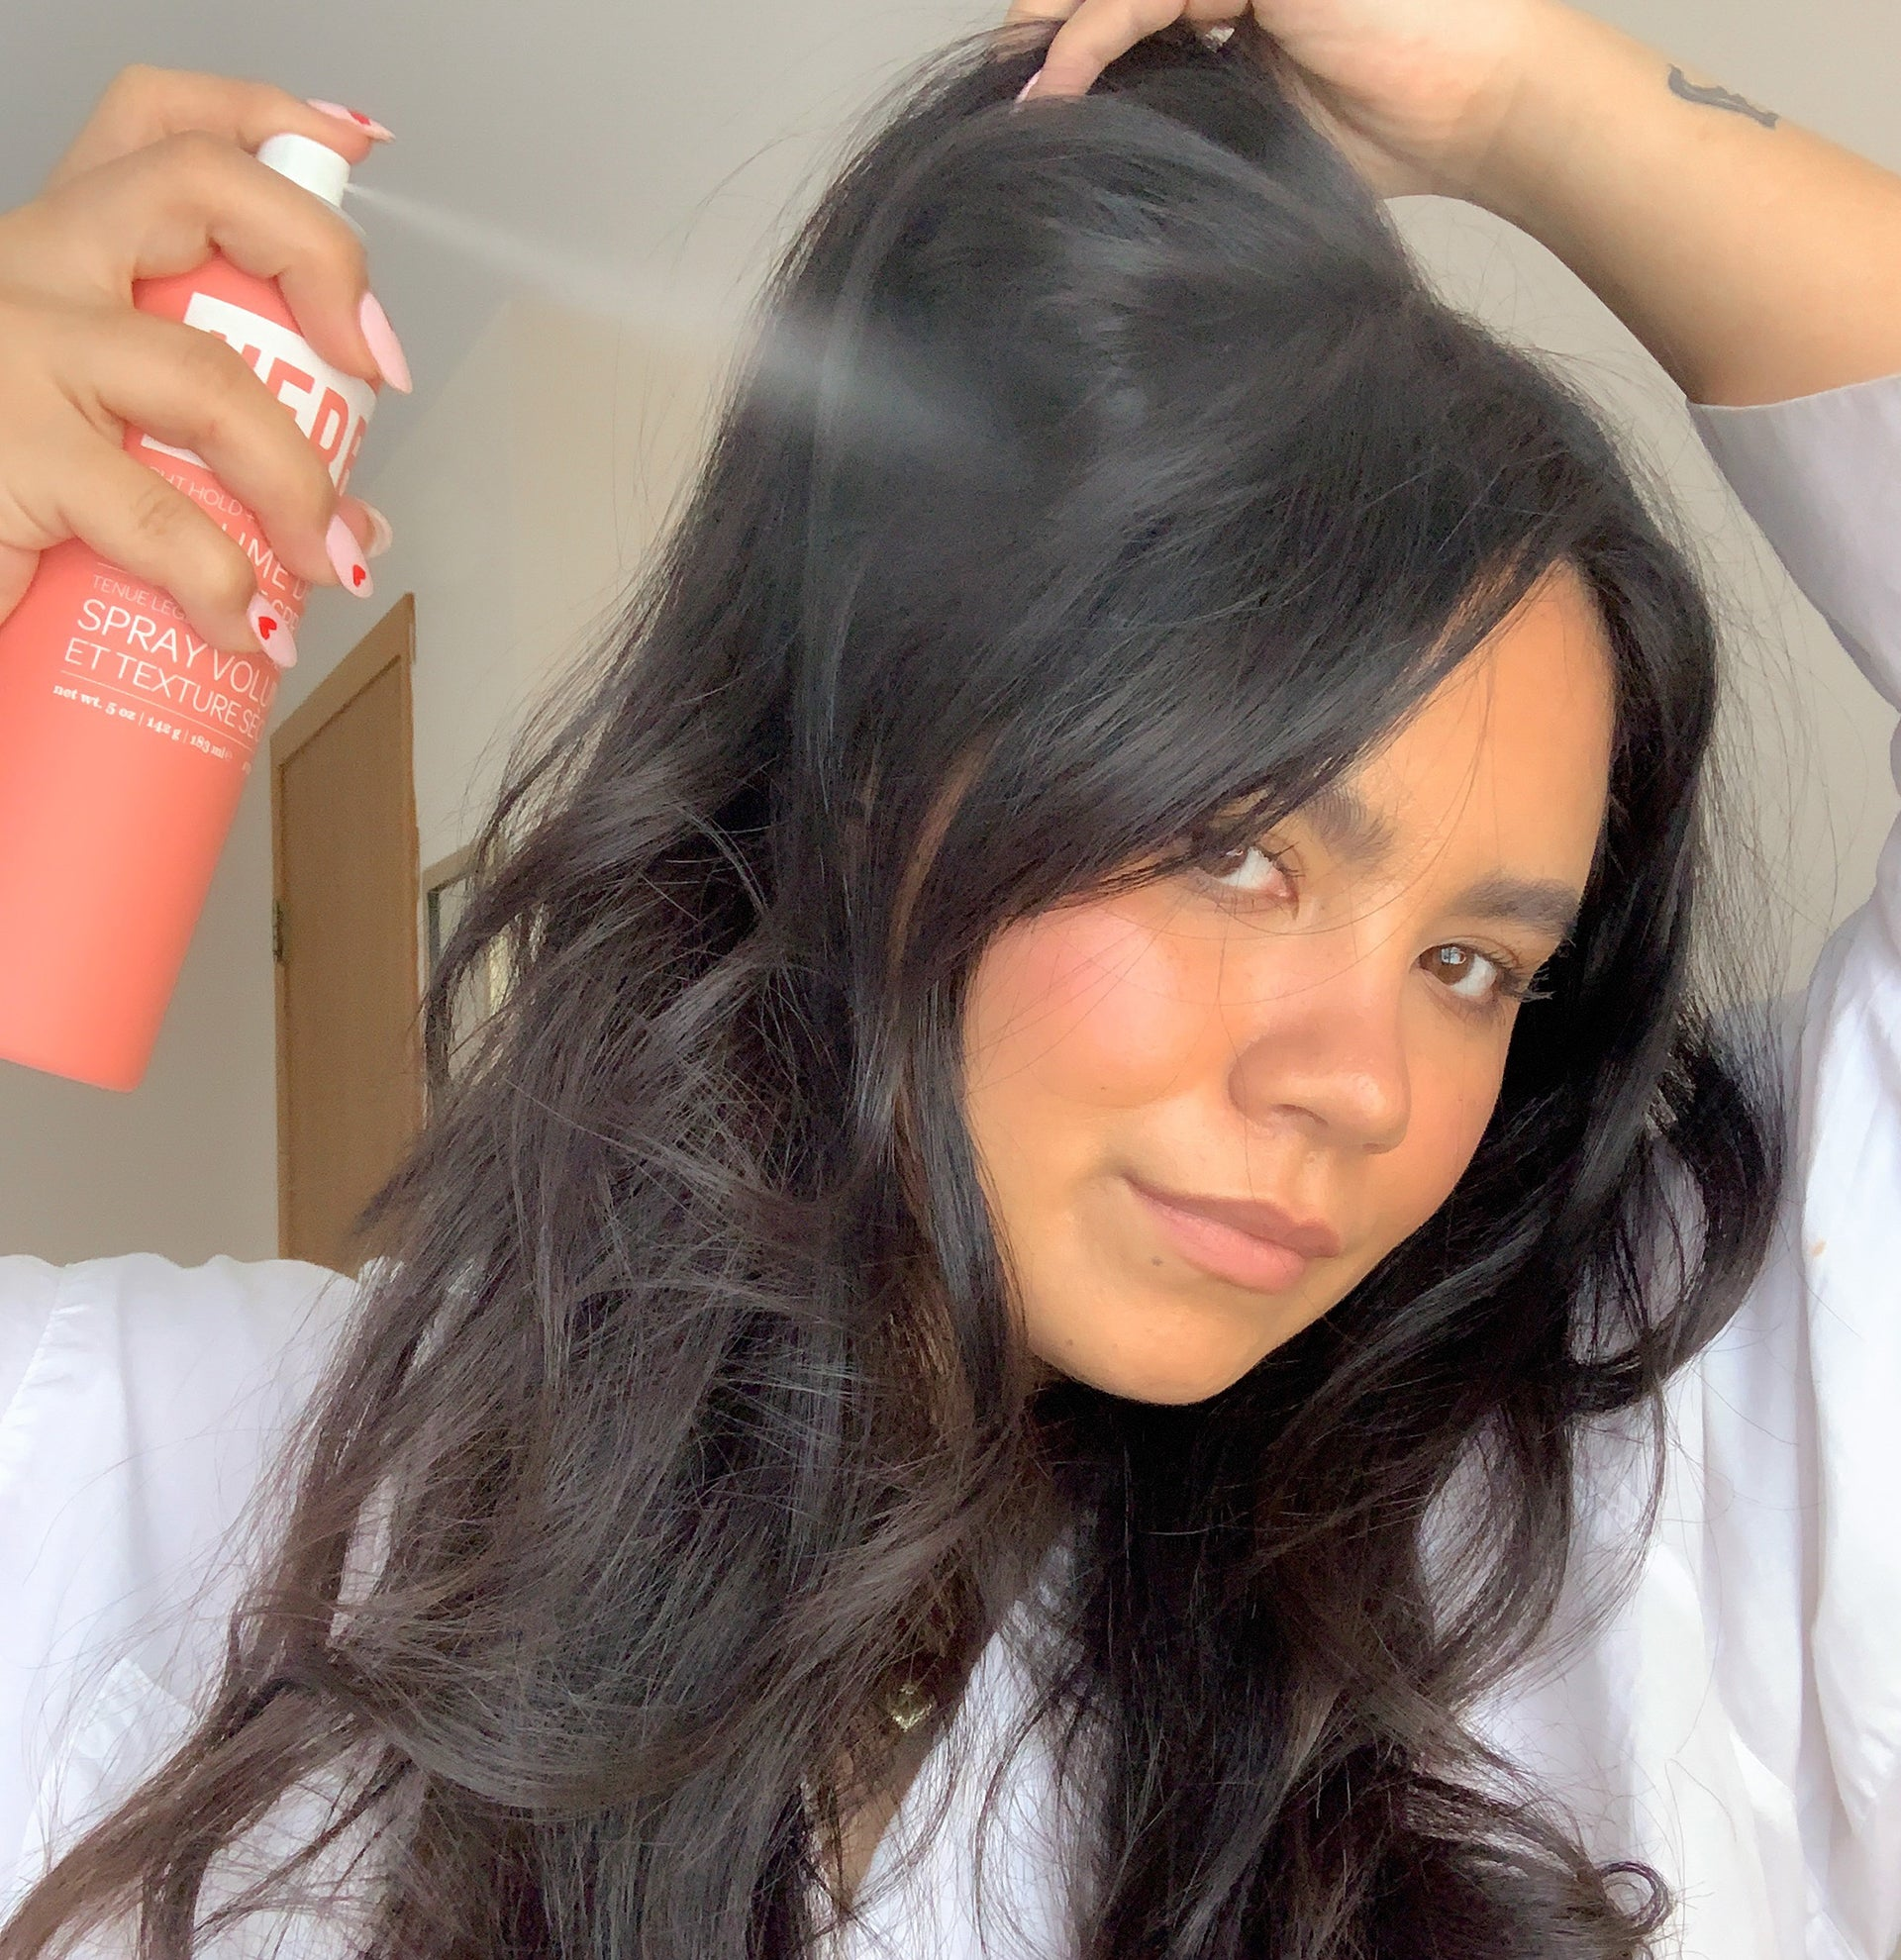 Volume Dry Texture Spray - How it works